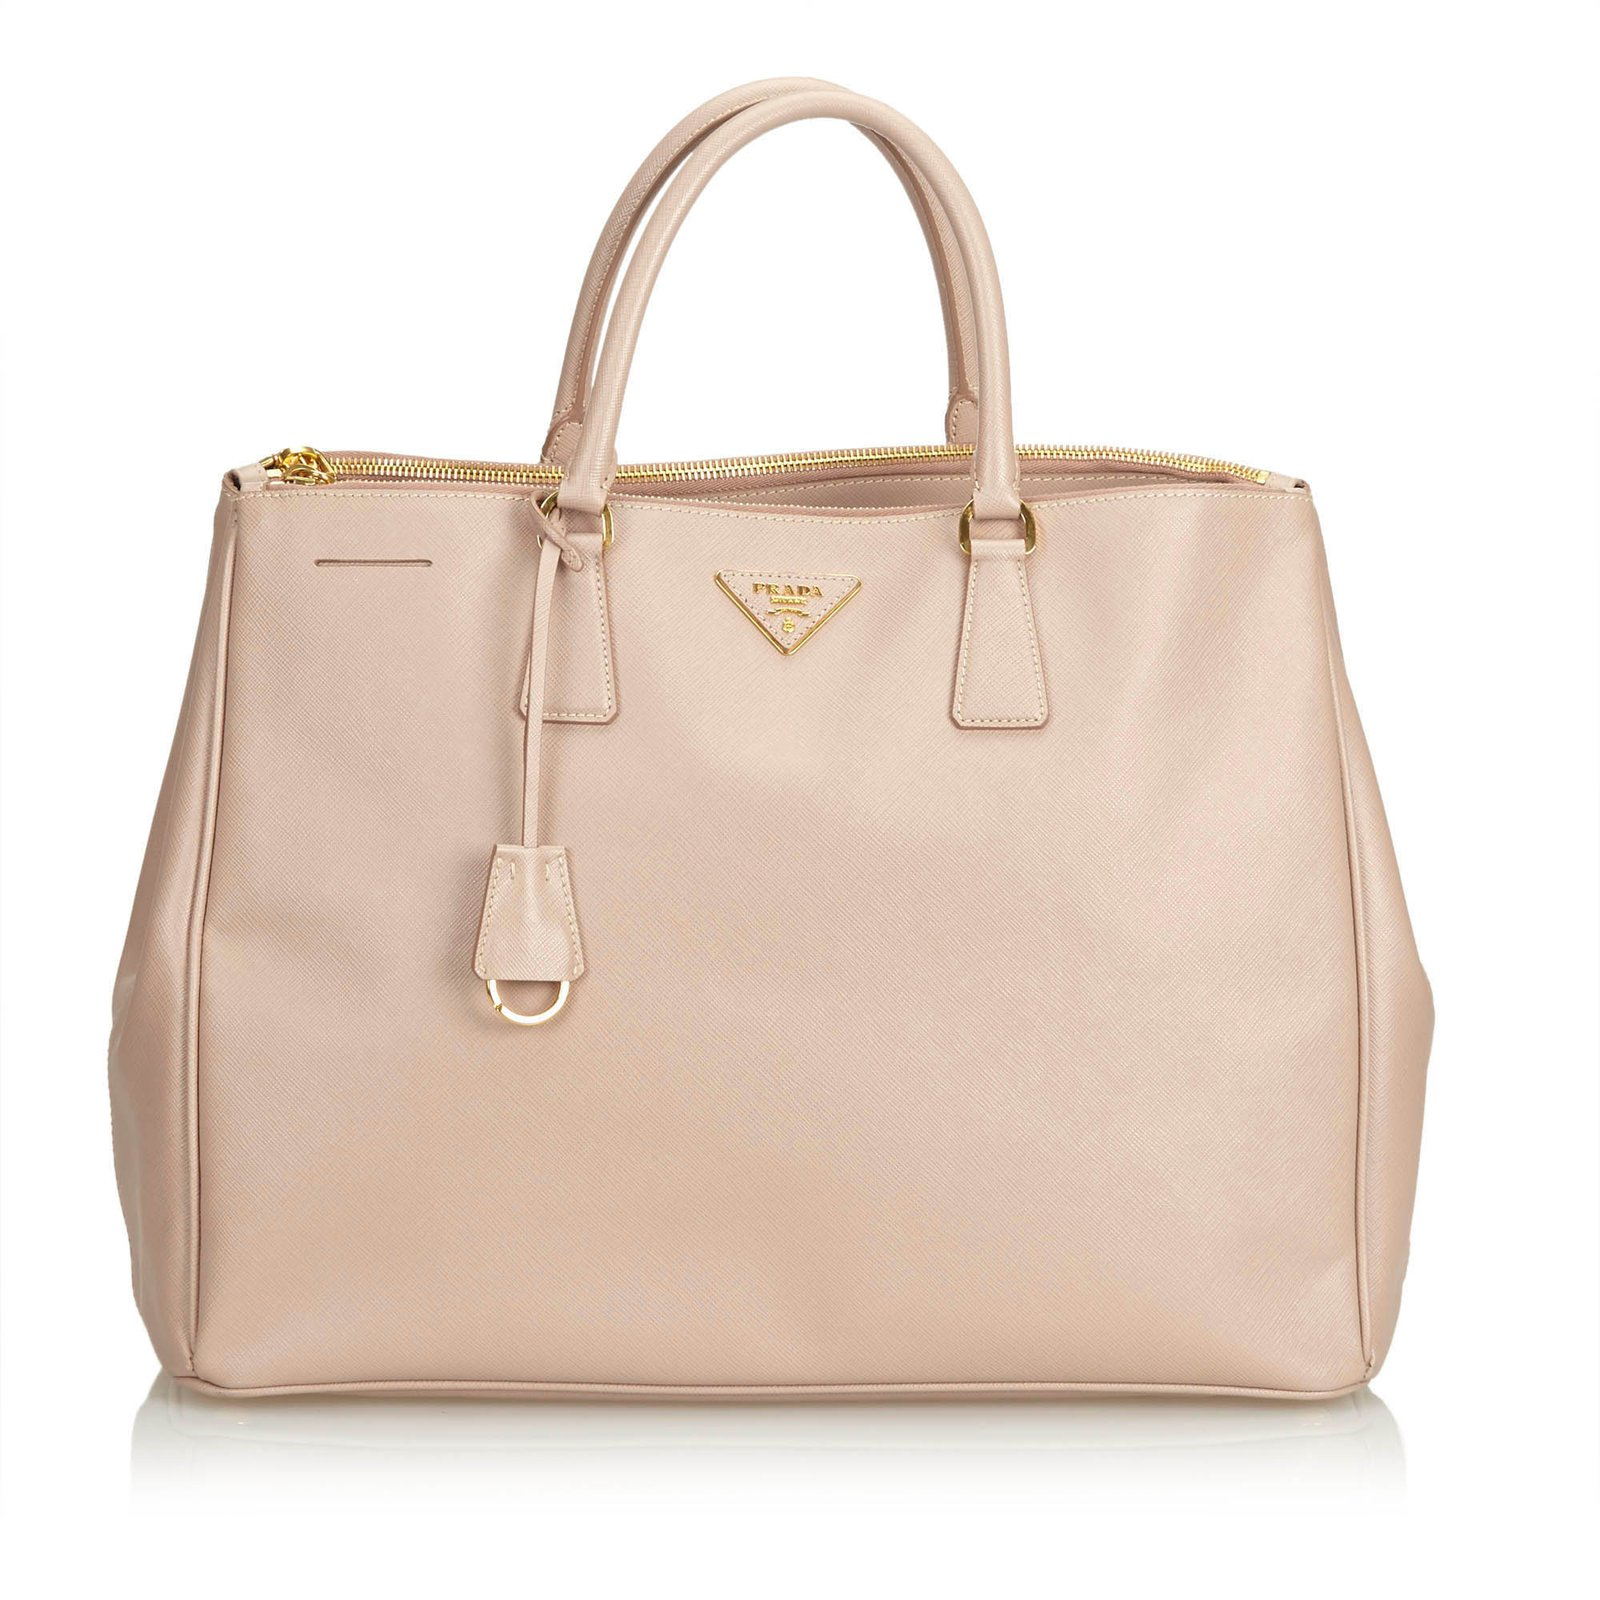 ... inexpensive prada saffiano leather tote bag totes leatherother  brownbeige ref.101949 5c386 65b7c caf0d1ad6a